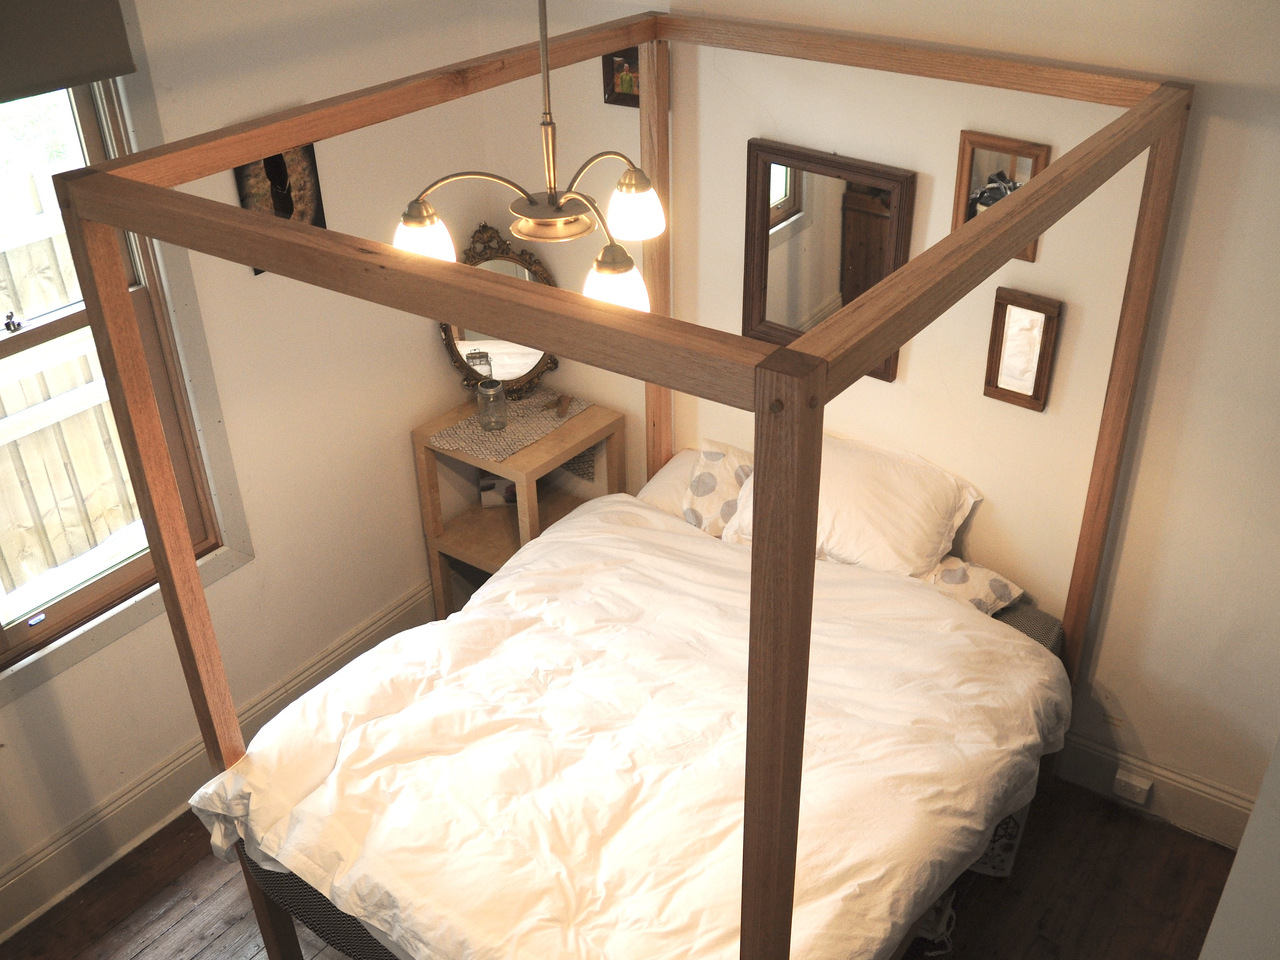 & The Four Poster Bed by Patrick Holcombe | Handkrafted